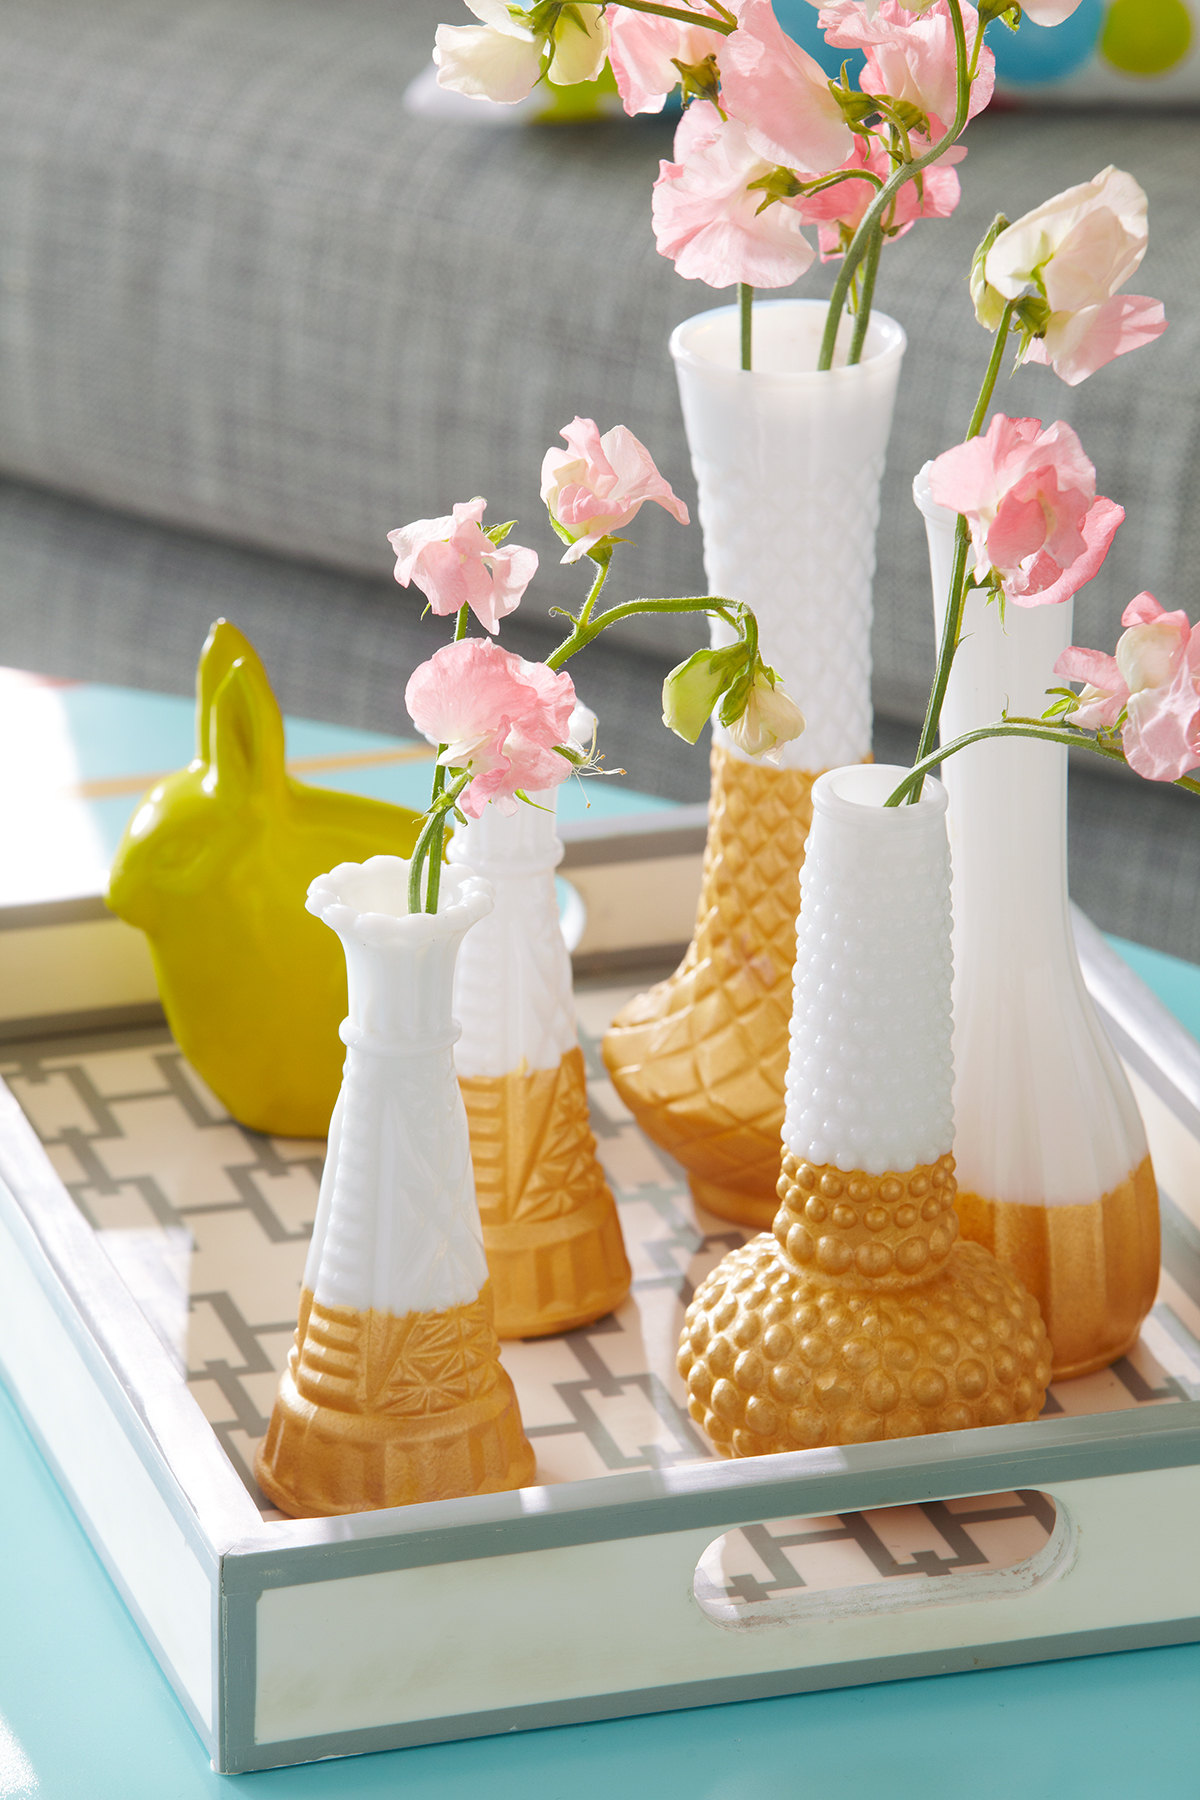 milk glass vases dipped in gold paint